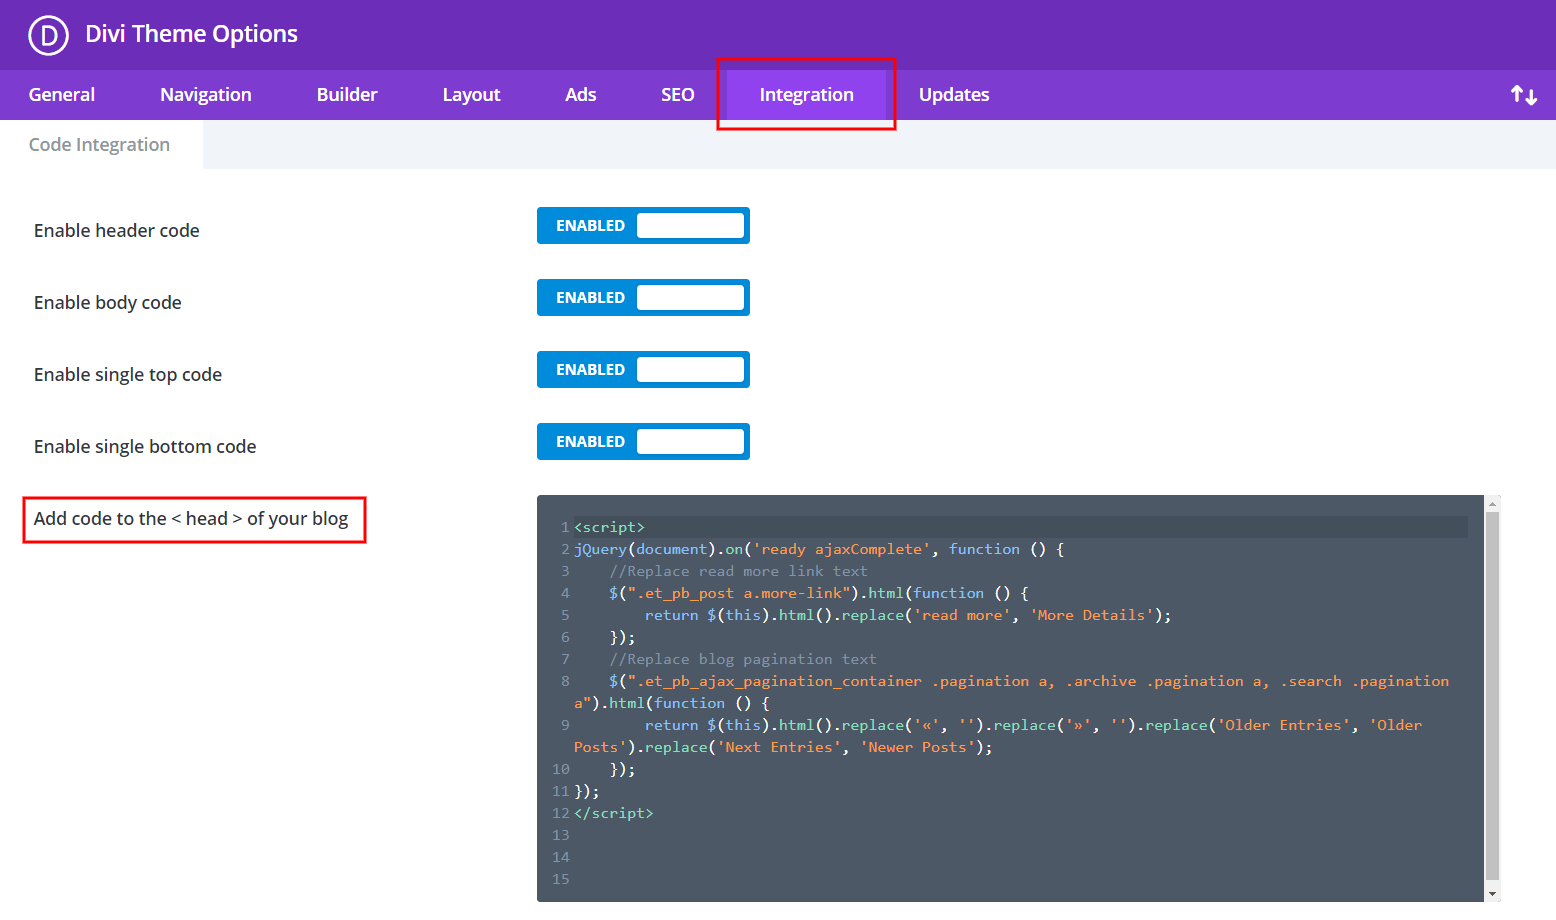 add code to the Divi Theme Options Integrations tab